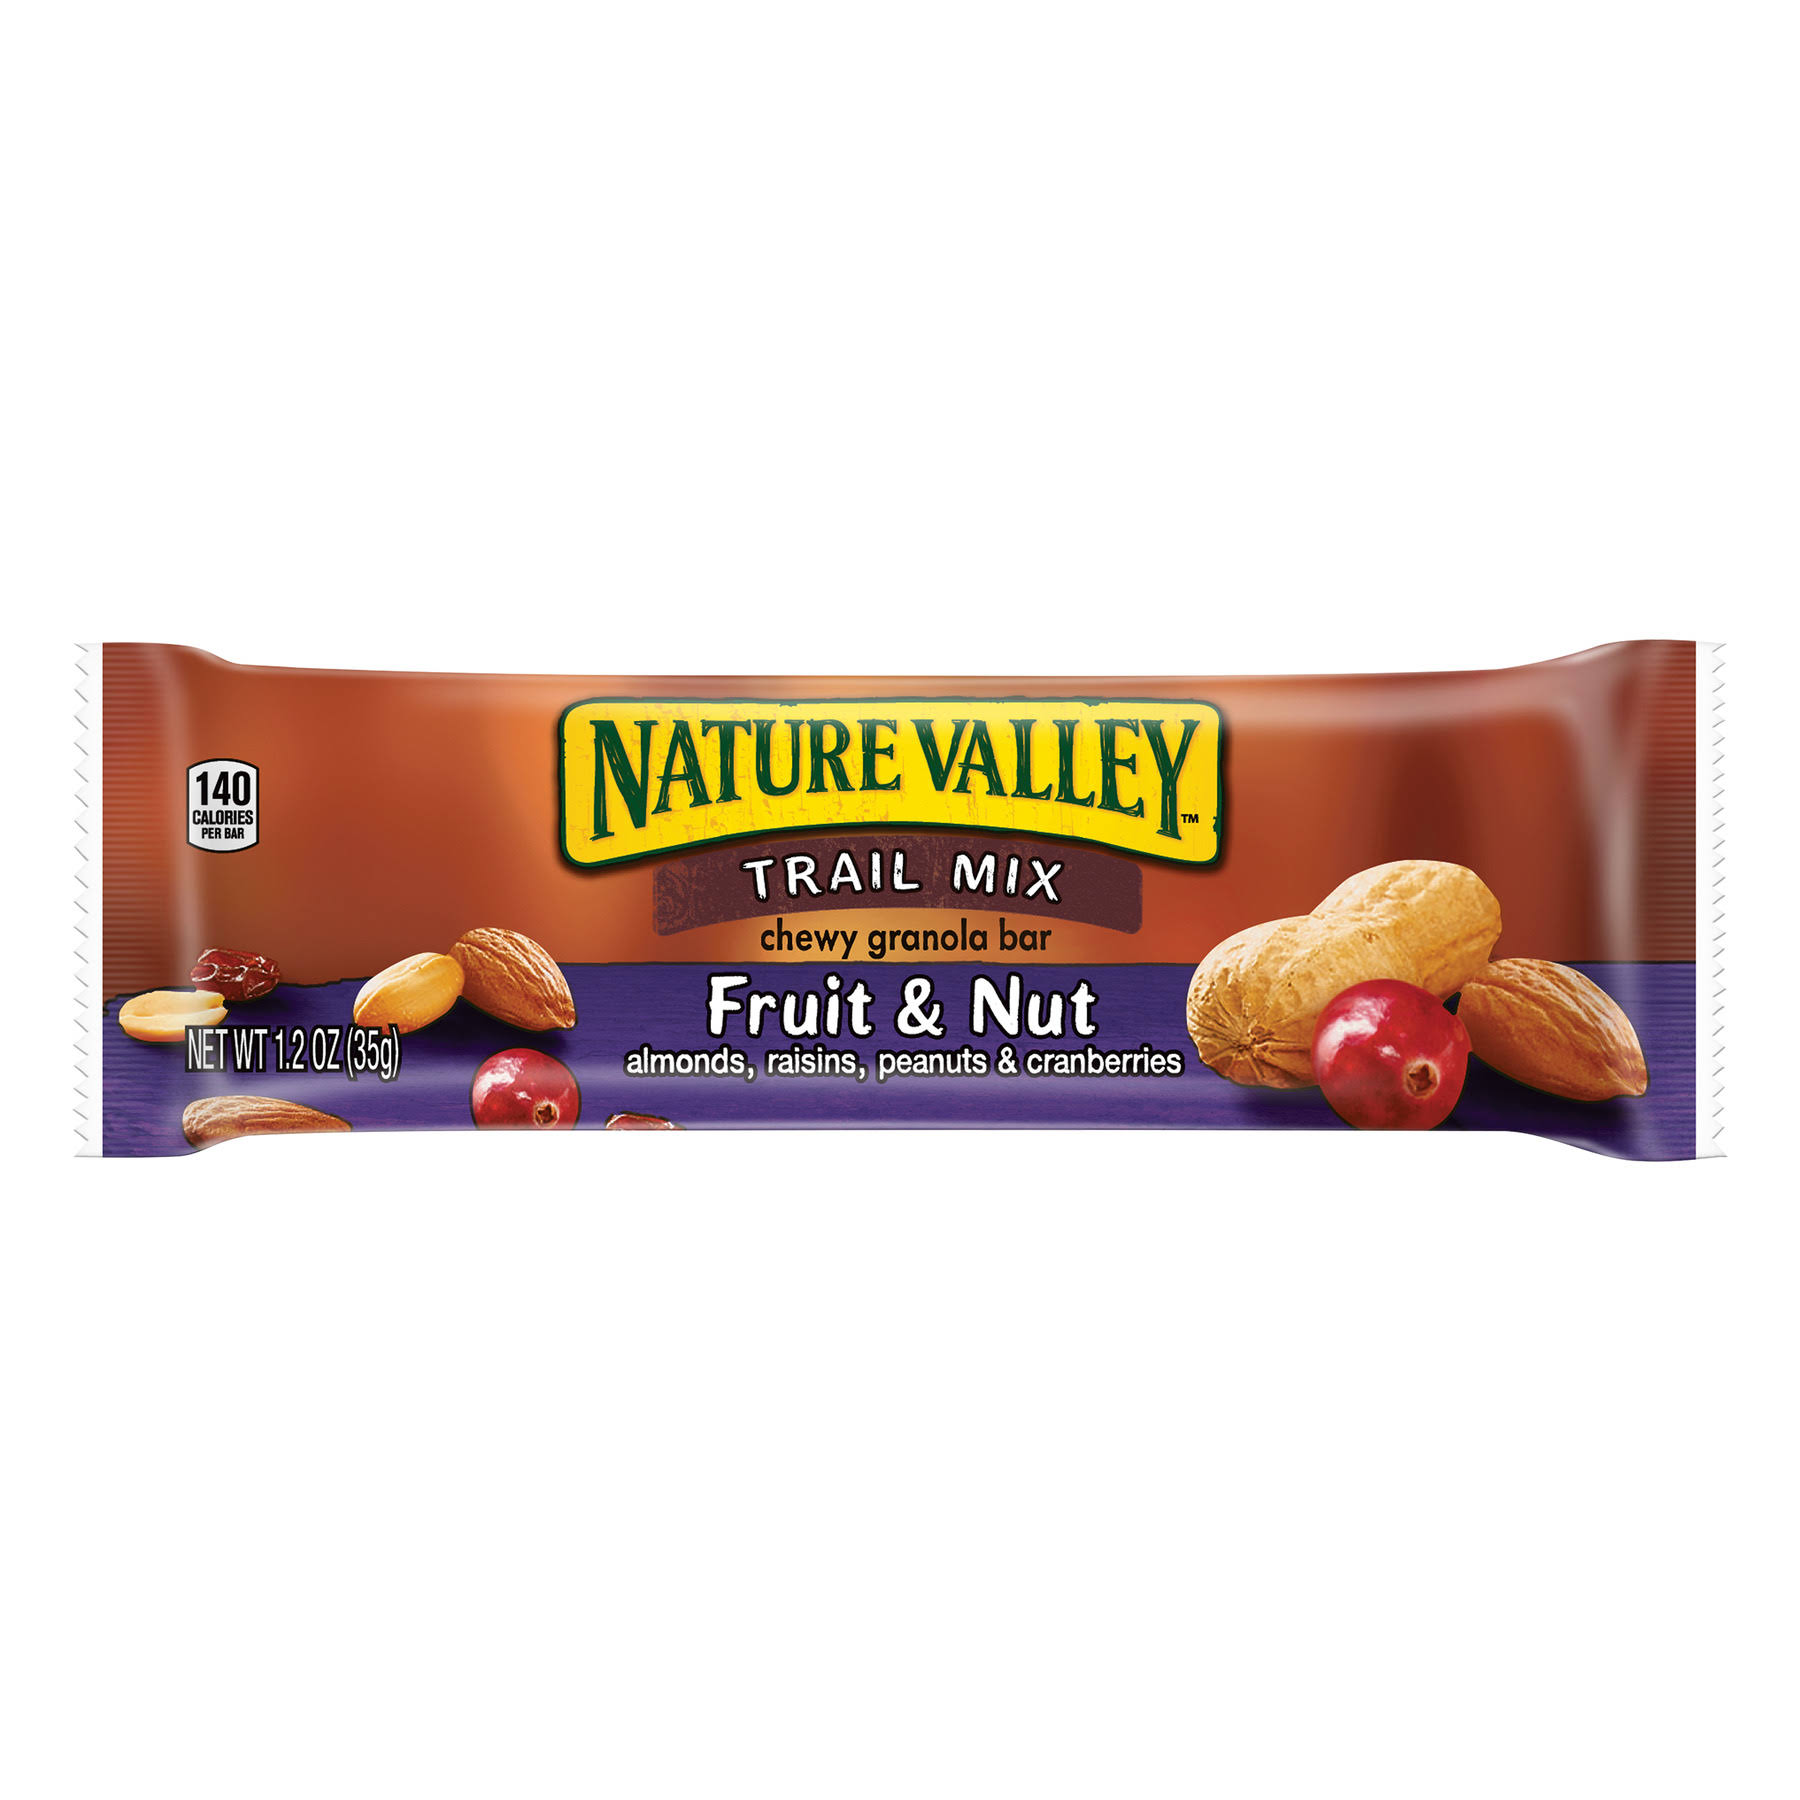 ature Valley Trail Mix Fruit & Nut Chewy Bar - 1.20 Oz